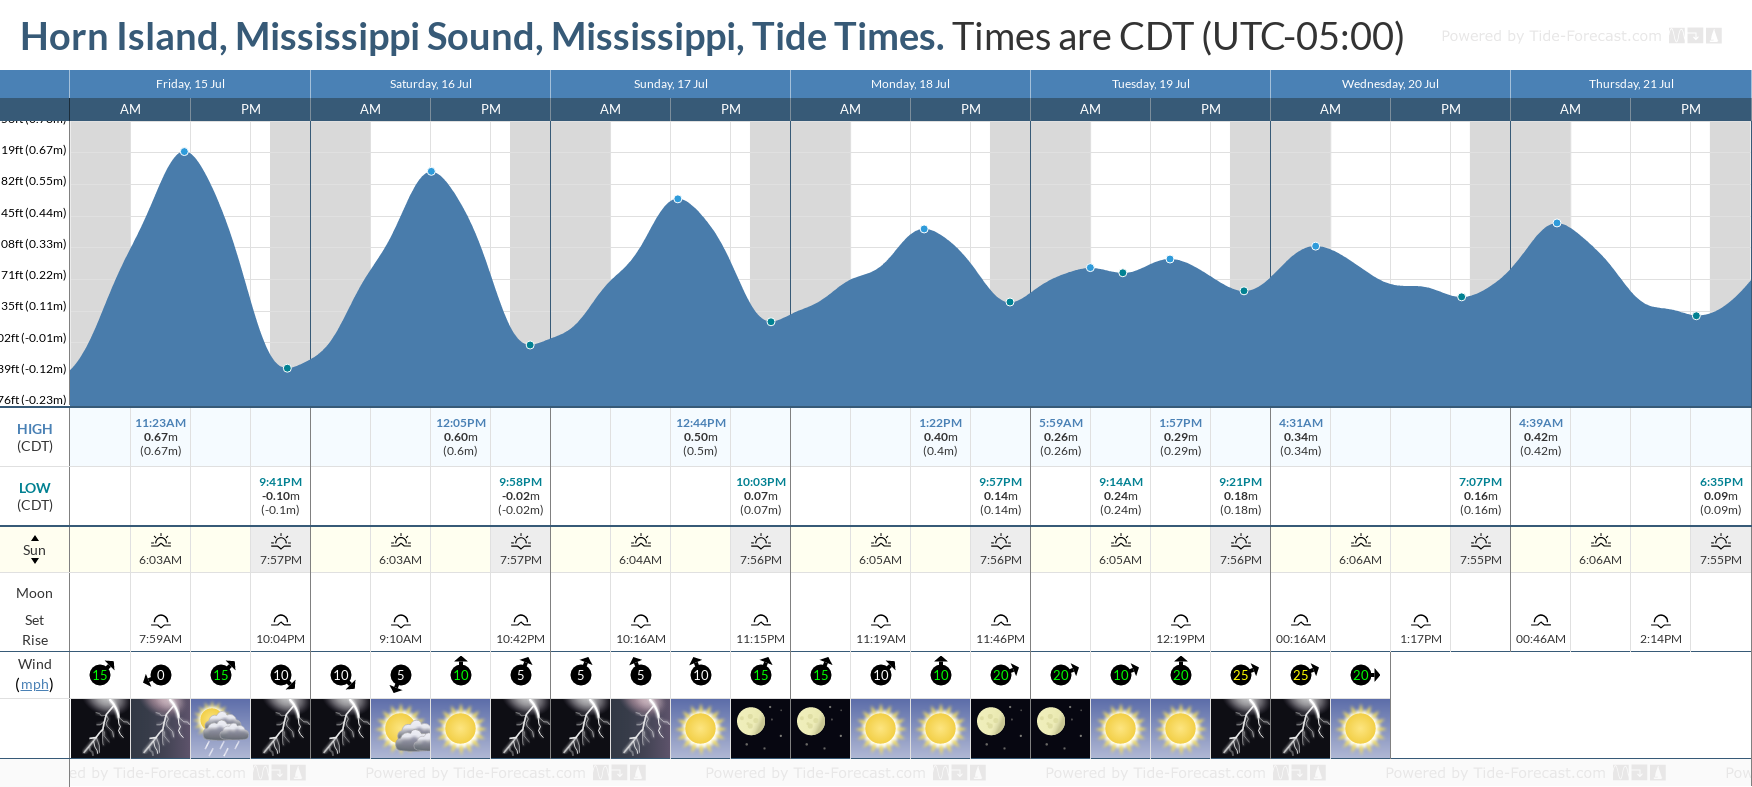 Horn Island, Mississippi Sound, Mississippi Tide Chart including high and low tide tide times for the next 7 days